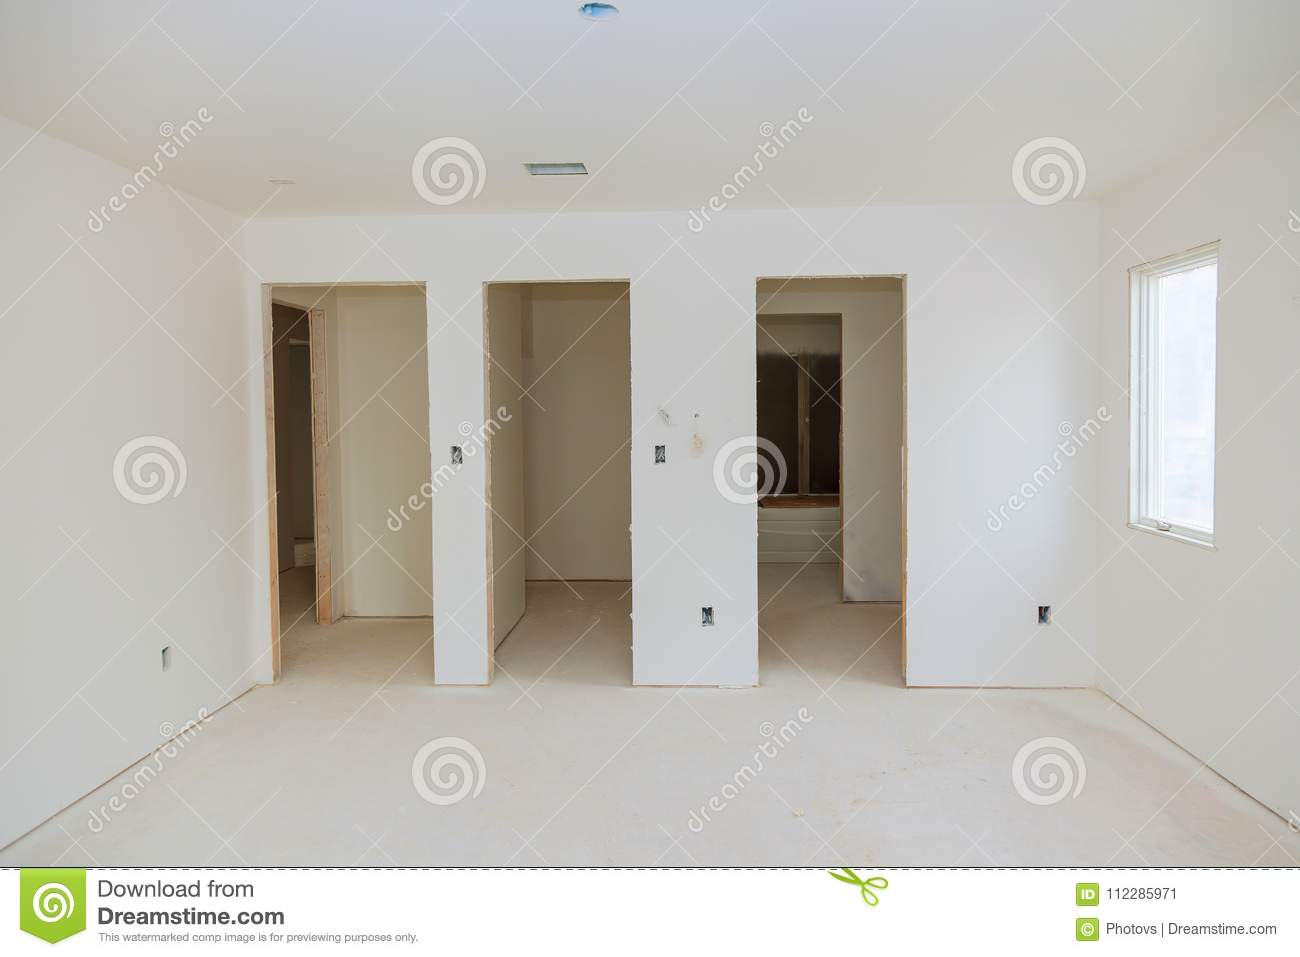 New Home Construction Interior Room With Unfinished Wood Floors And ...